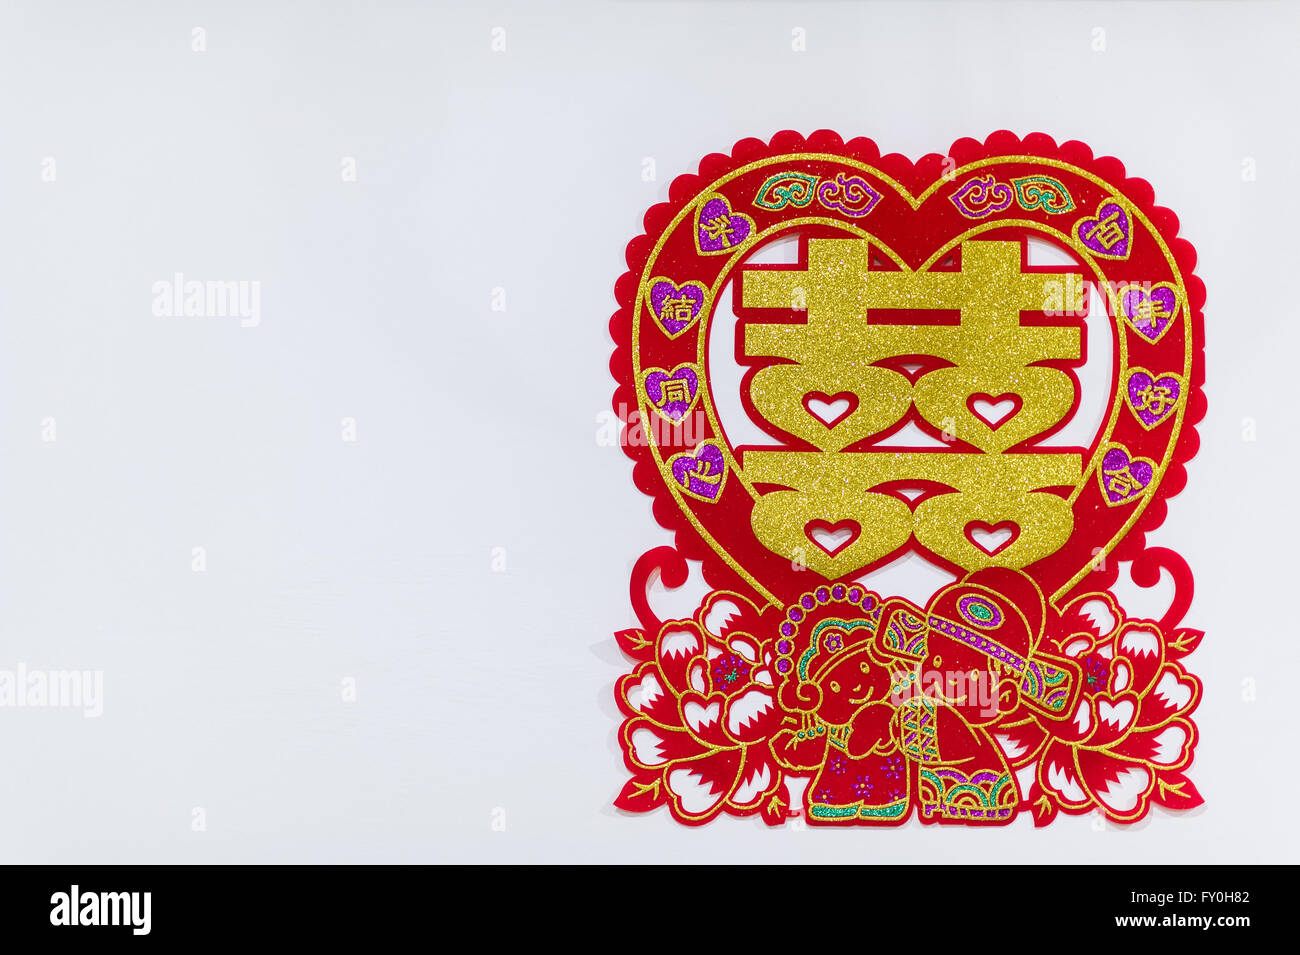 Chinese Wedding Decor To Mean Double Happiness Stock Photo Royalty